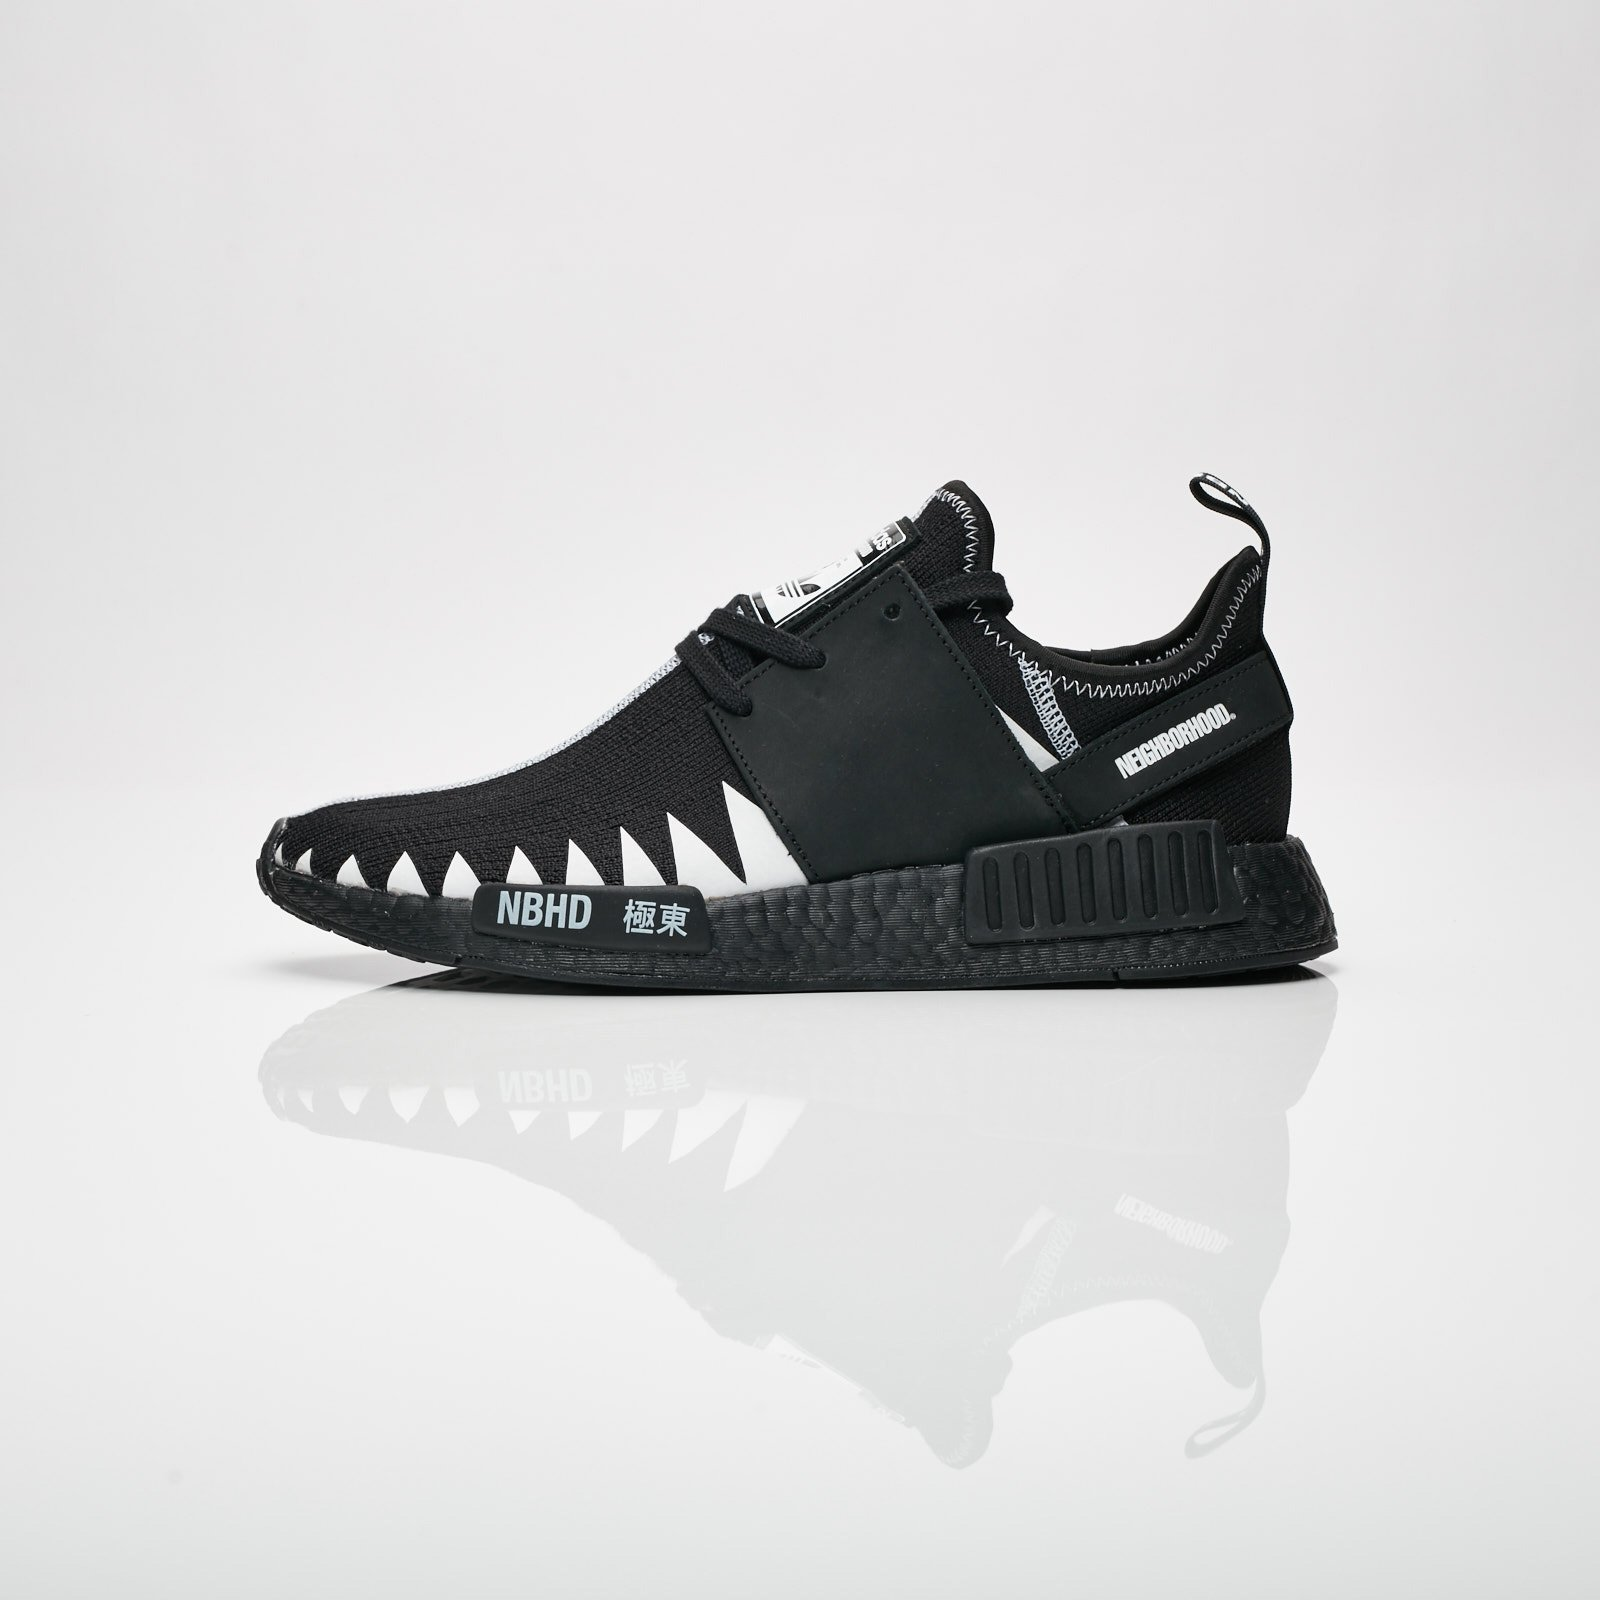 huge discount 65133 18ad2 adidas NMD R1 PK x Neighborhood - Da8835 - Sneakersnstuff ...